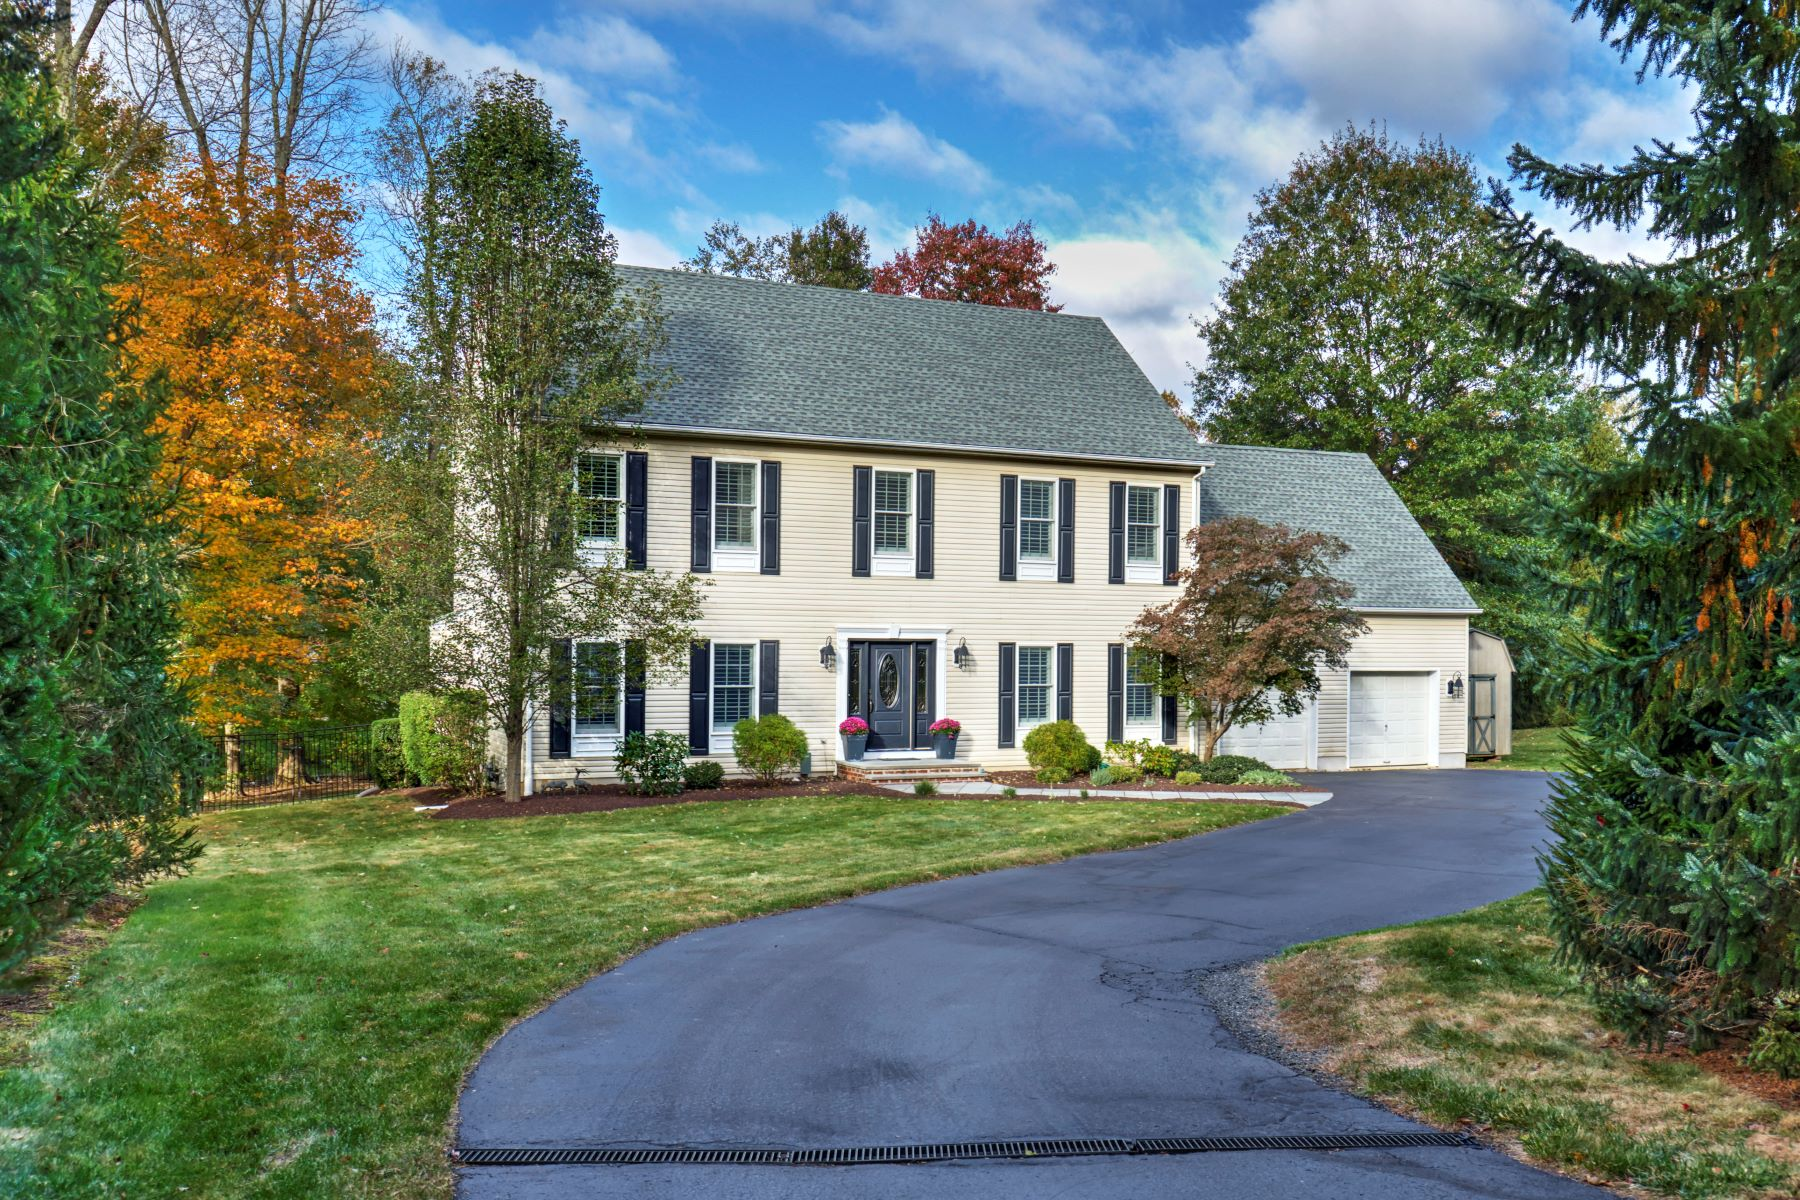 Single Family Homes for Sale at Beautiful Colonial 98 Washington Avenue Basking Ridge, New Jersey 07920 United States